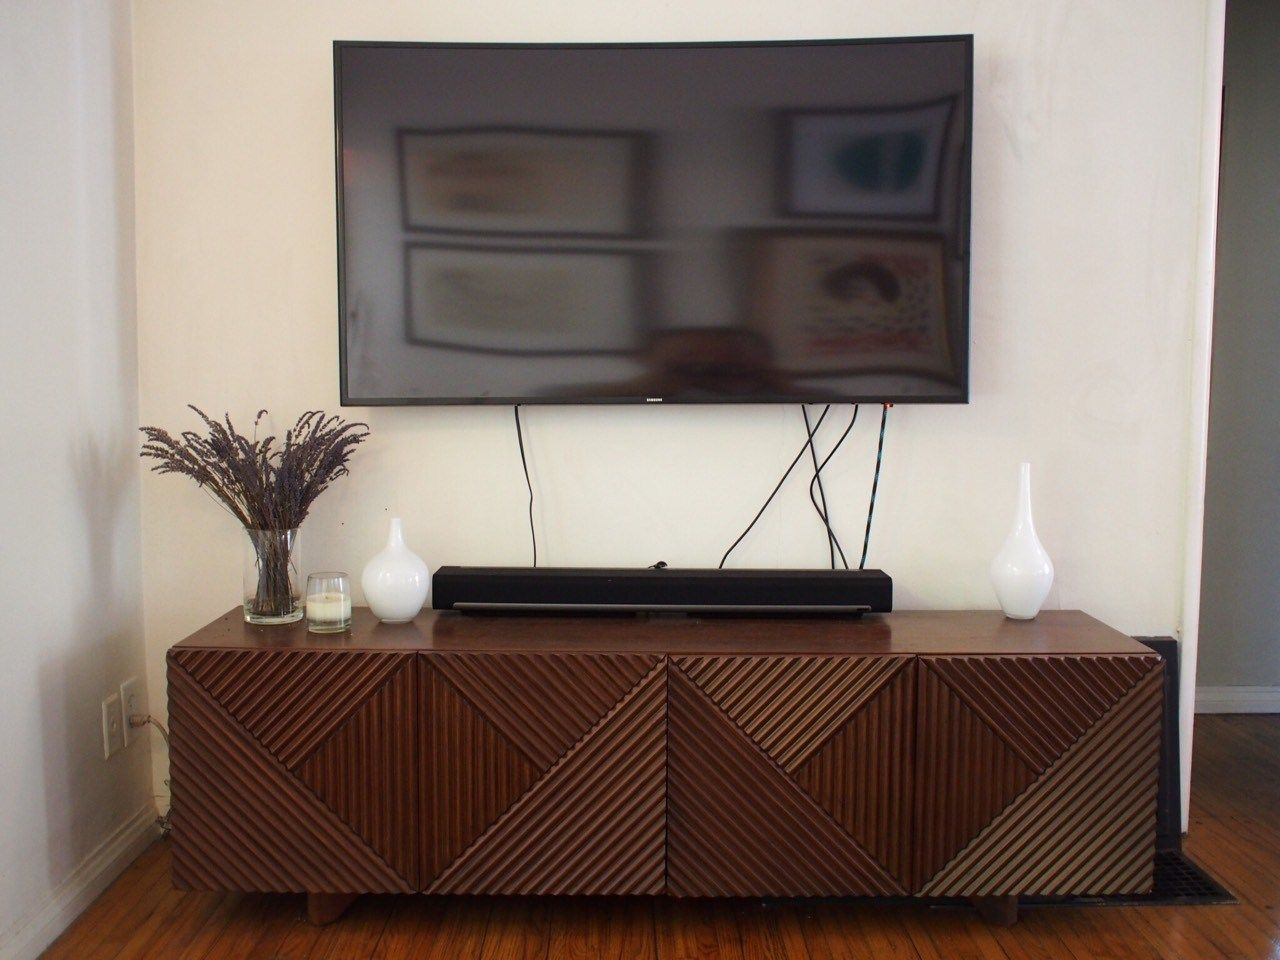 How To Hide Tv Cords And Cables Hide Tv Cords Hidden Tv Hiding Tv Cords On Wall